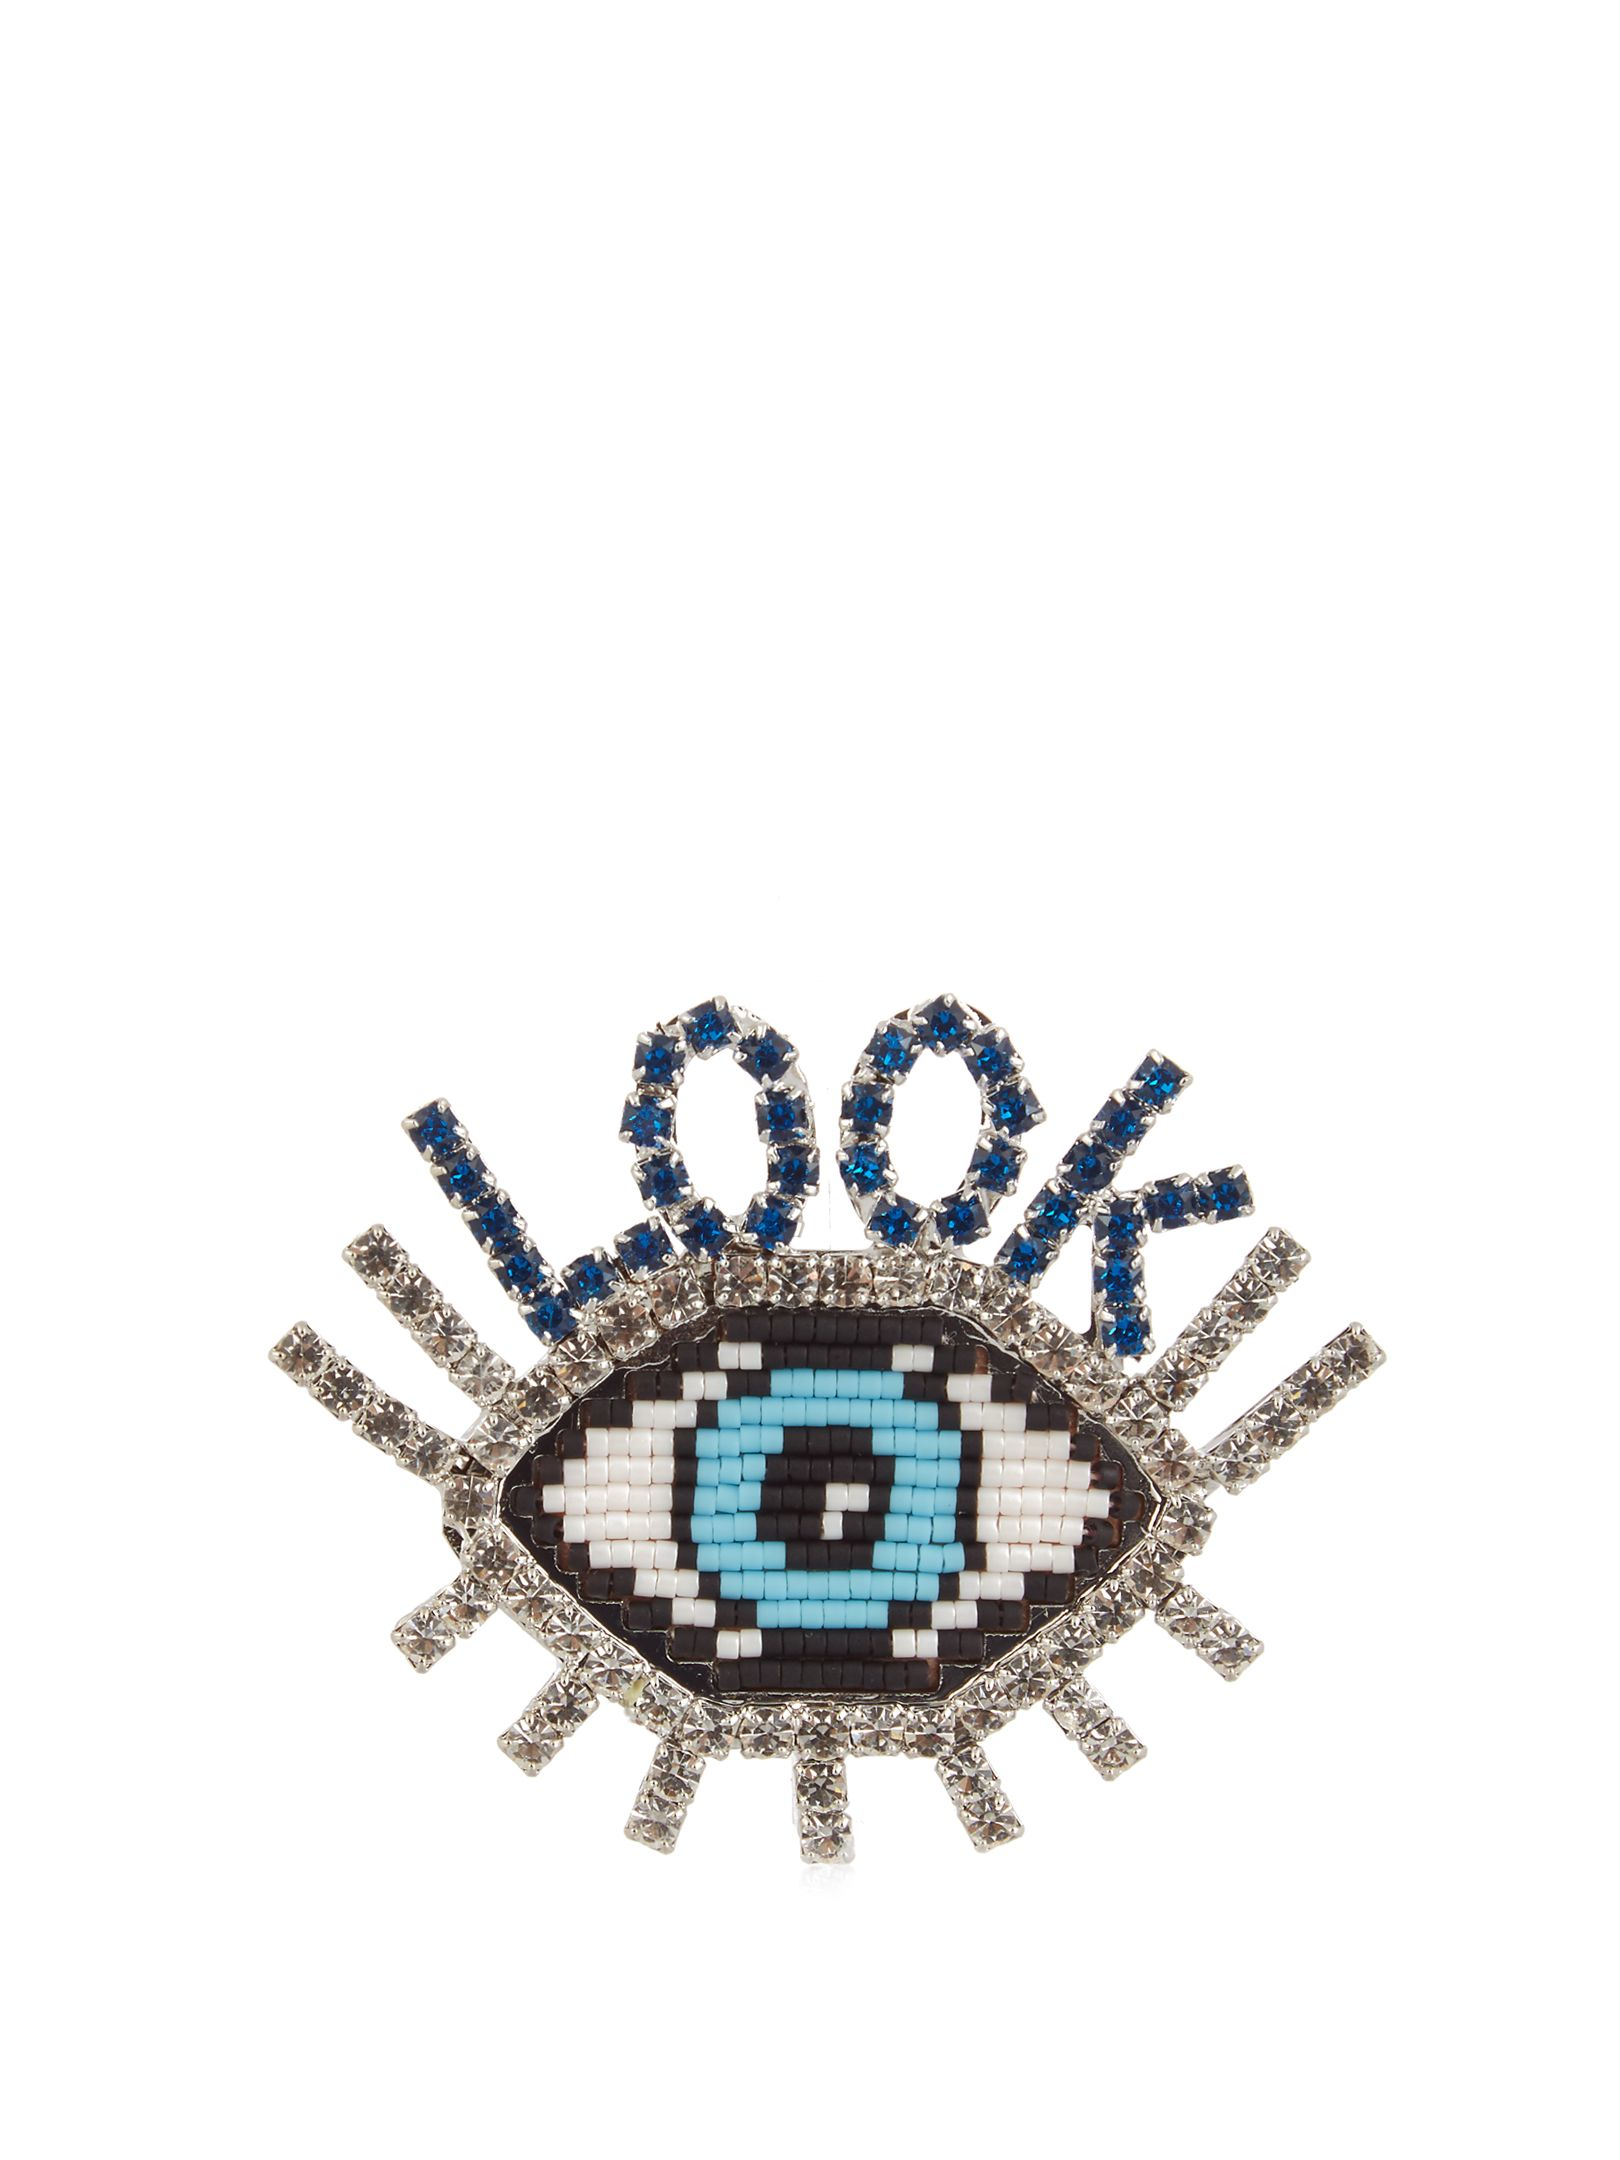 feathers shop needlework on online ludmila biser livemaster eye shipping with brooch item